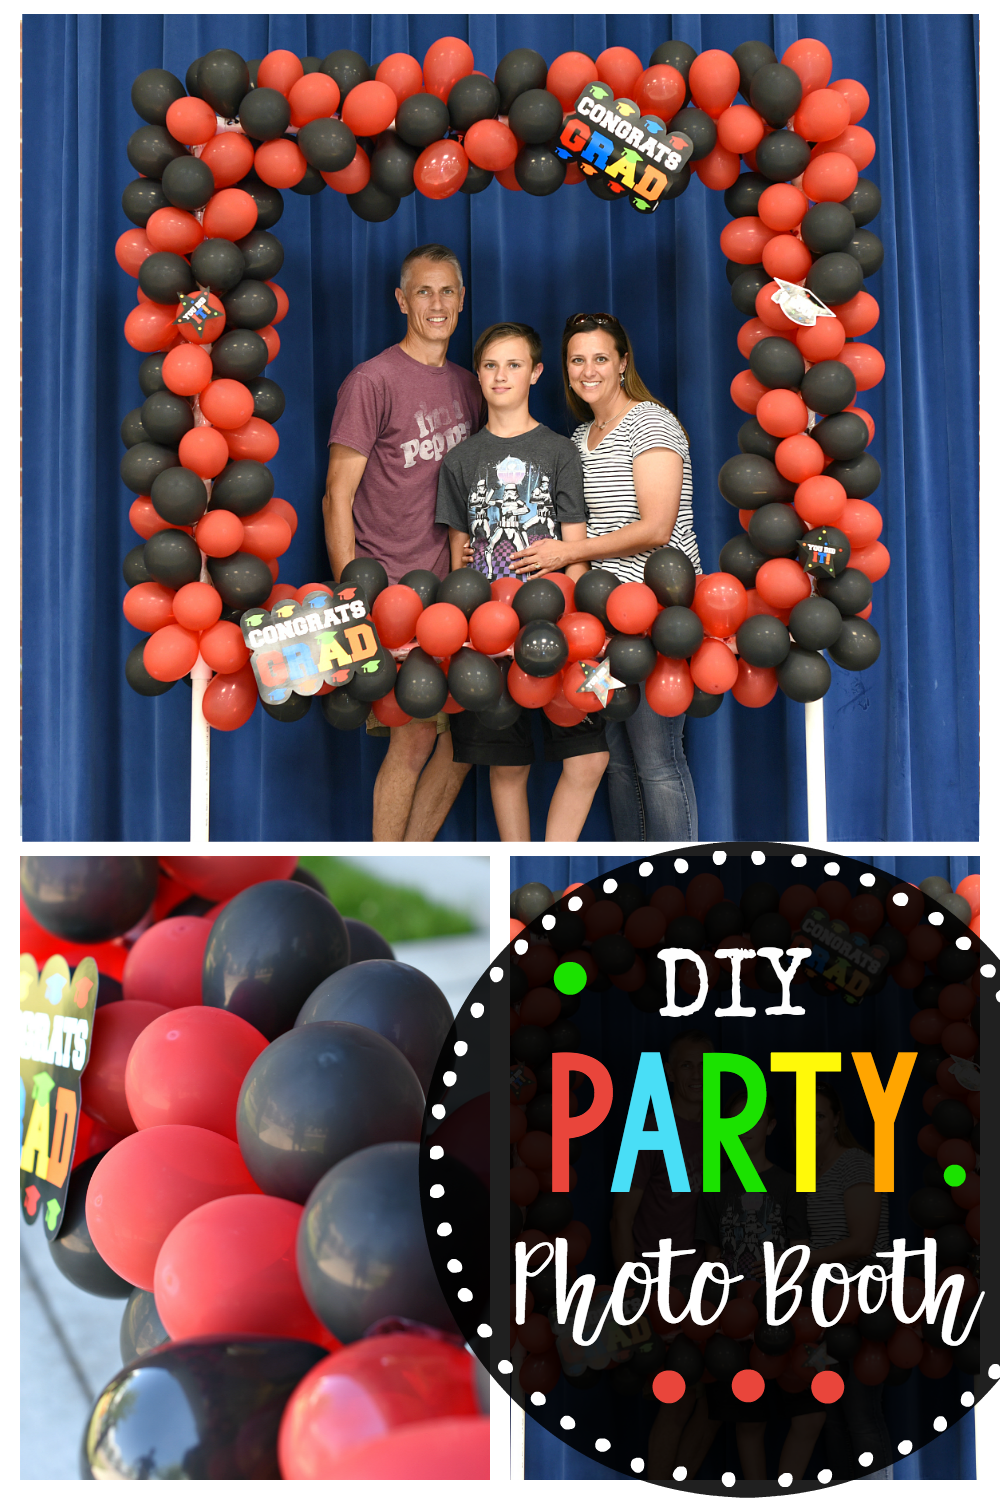 Make this fun DIY photo booth for your next party or event! It turns out so great and is perfect for birthdays, weddings, graduations and any special occasion. Instructions to make this from PVC pipe and balloons. #party #partydecor #partydecorations #partyideas #birthday #birthdays #graduation